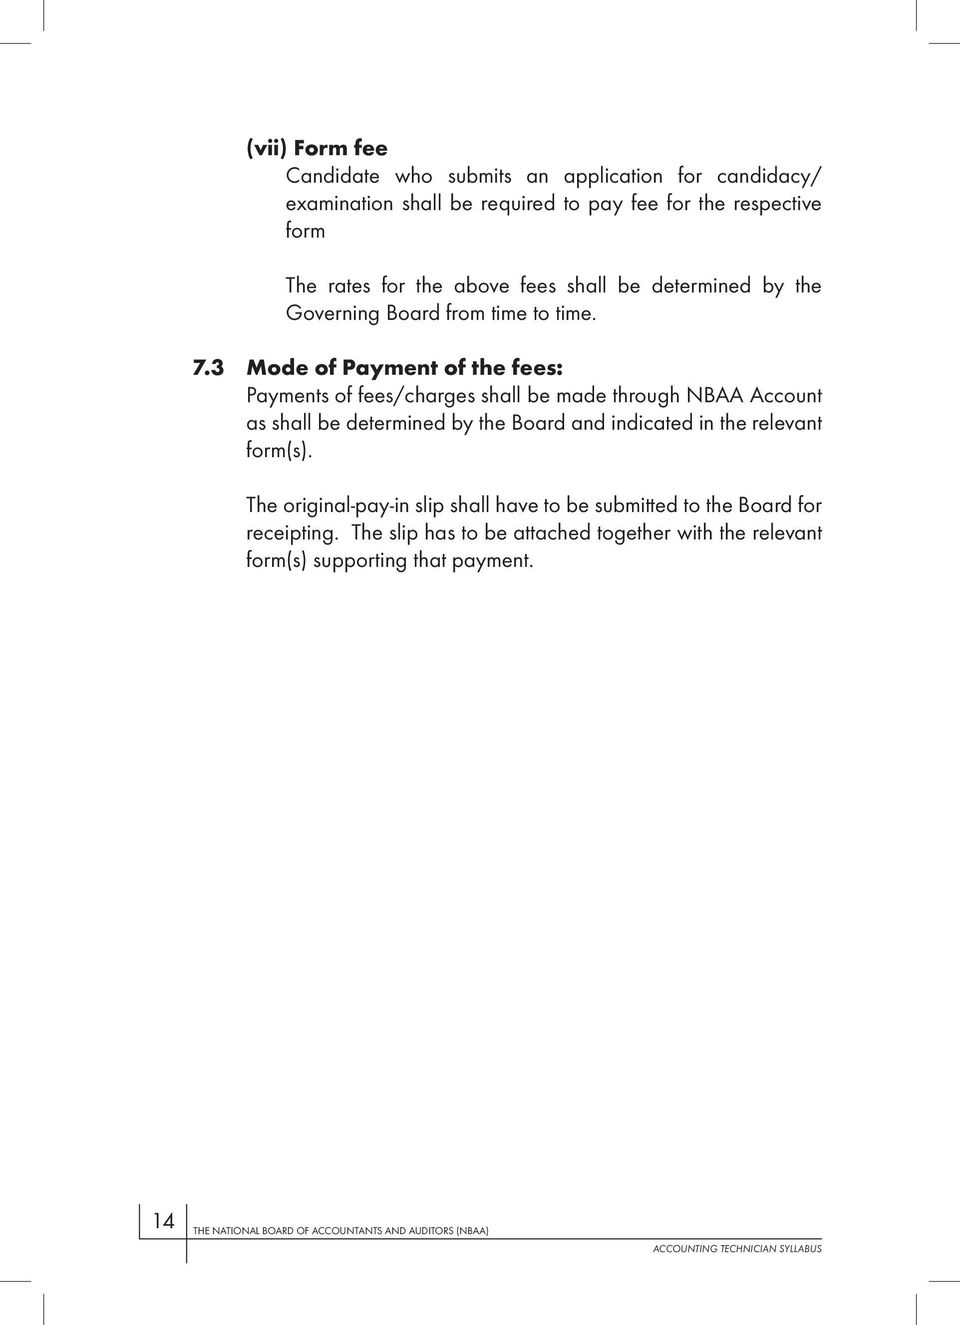 3 Mode of Payment of the fees: Payments of fees/charges shall be made